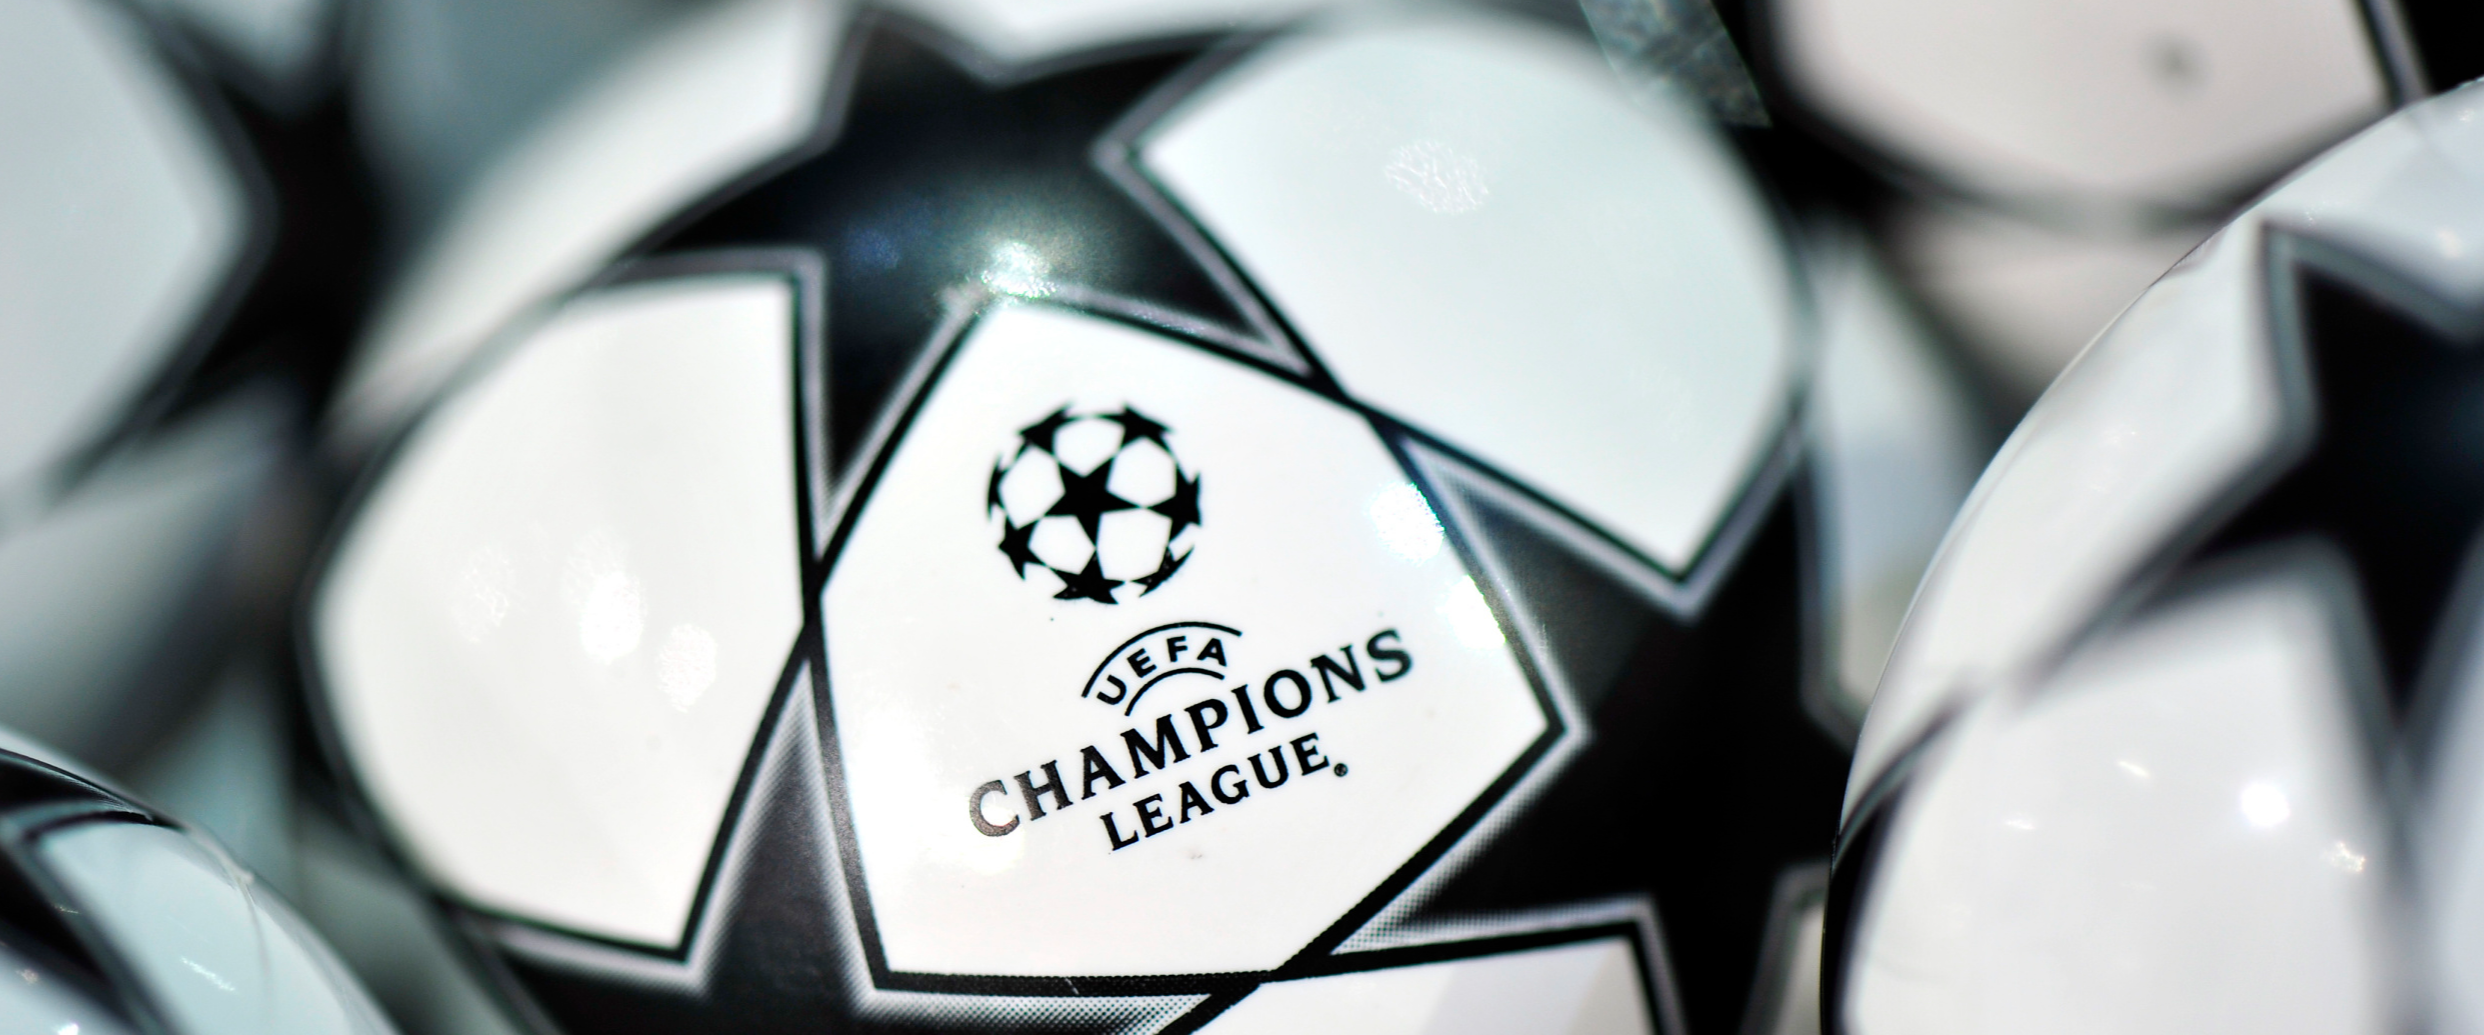 Ranking the 3 best Champions League round of 16 fixtures